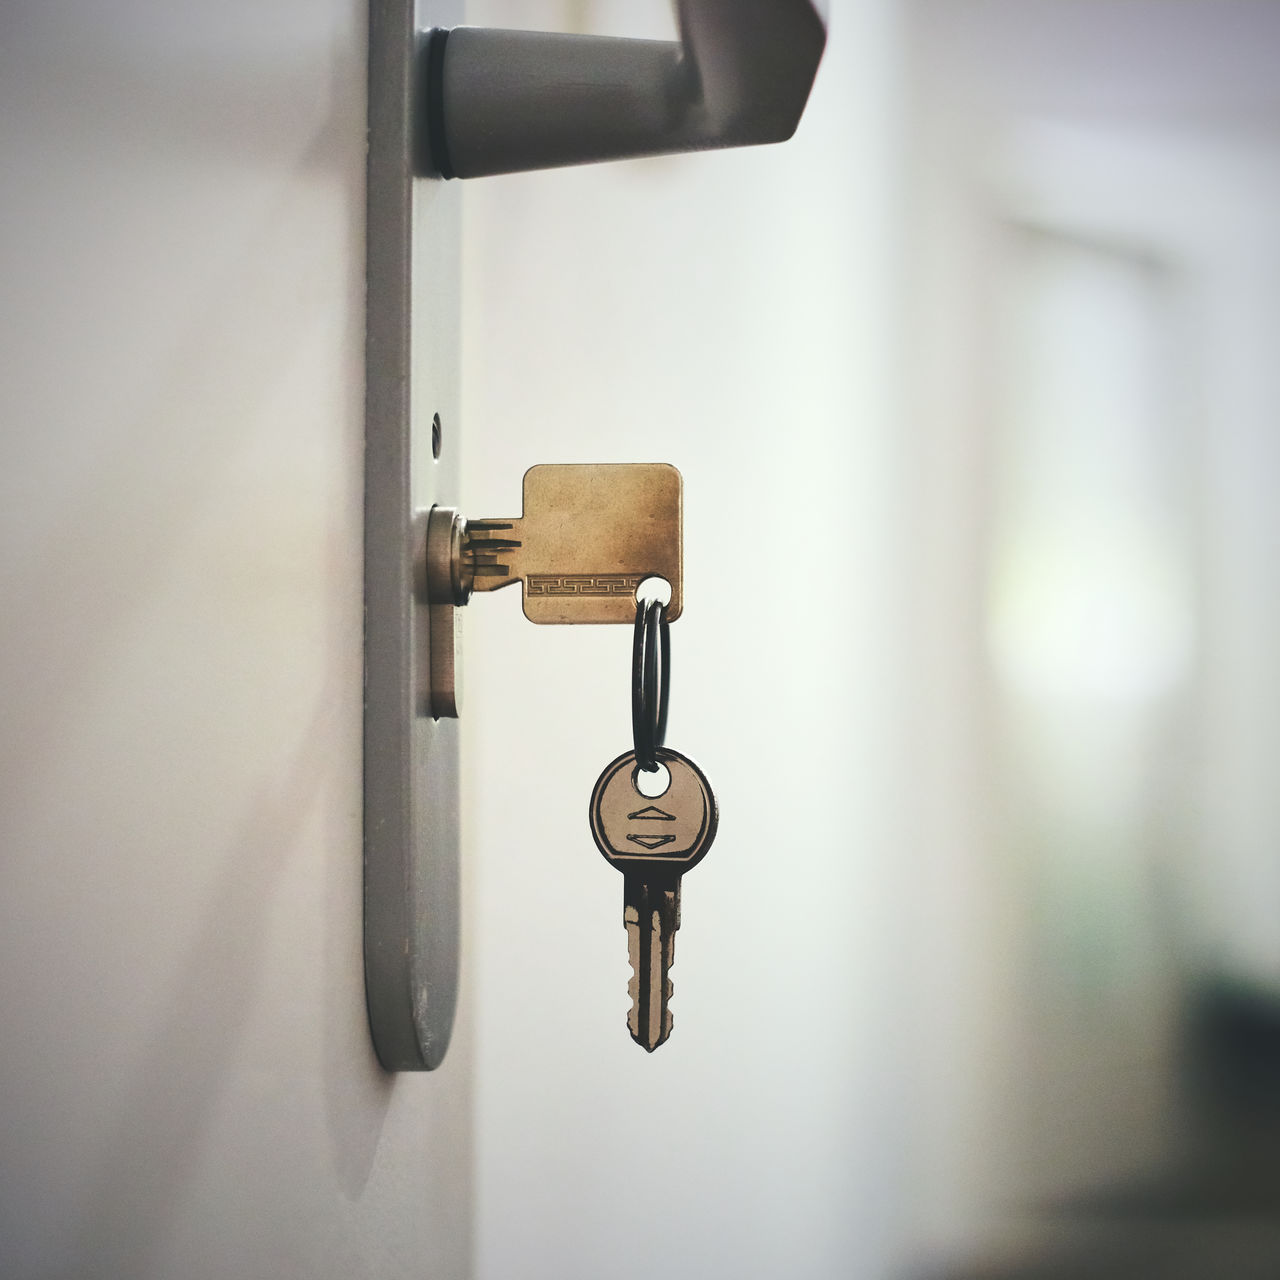 metal, entrance, door, no people, close-up, safety, focus on foreground, lock, indoors, security, protection, handle, key, selective focus, hanging, doorknob, keyhole, day, architecture, wall - building feature, latch